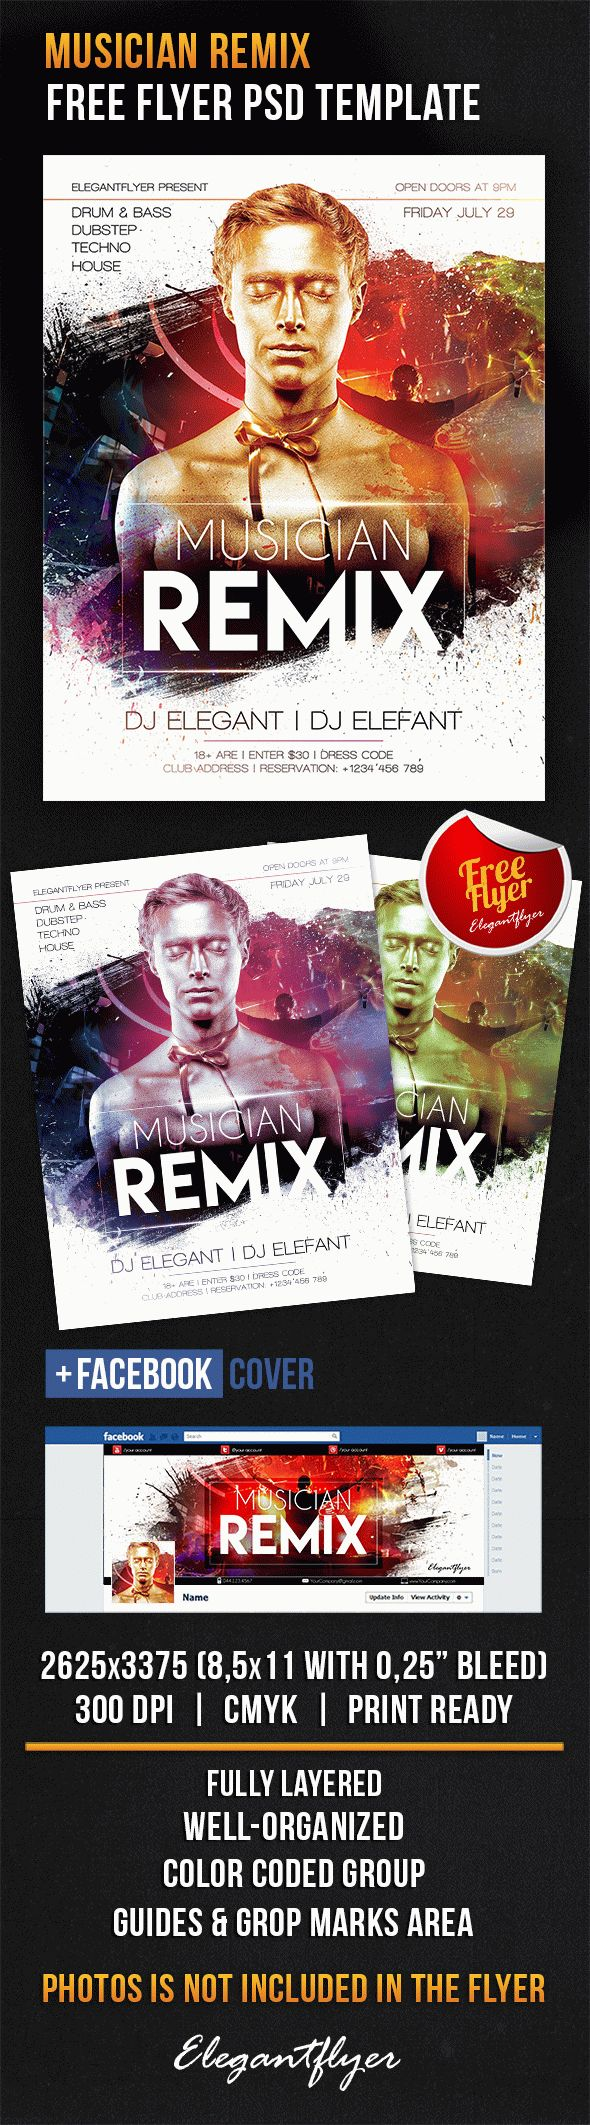 Musician Remix – Free Flyer PSD Template + Facebook Cover